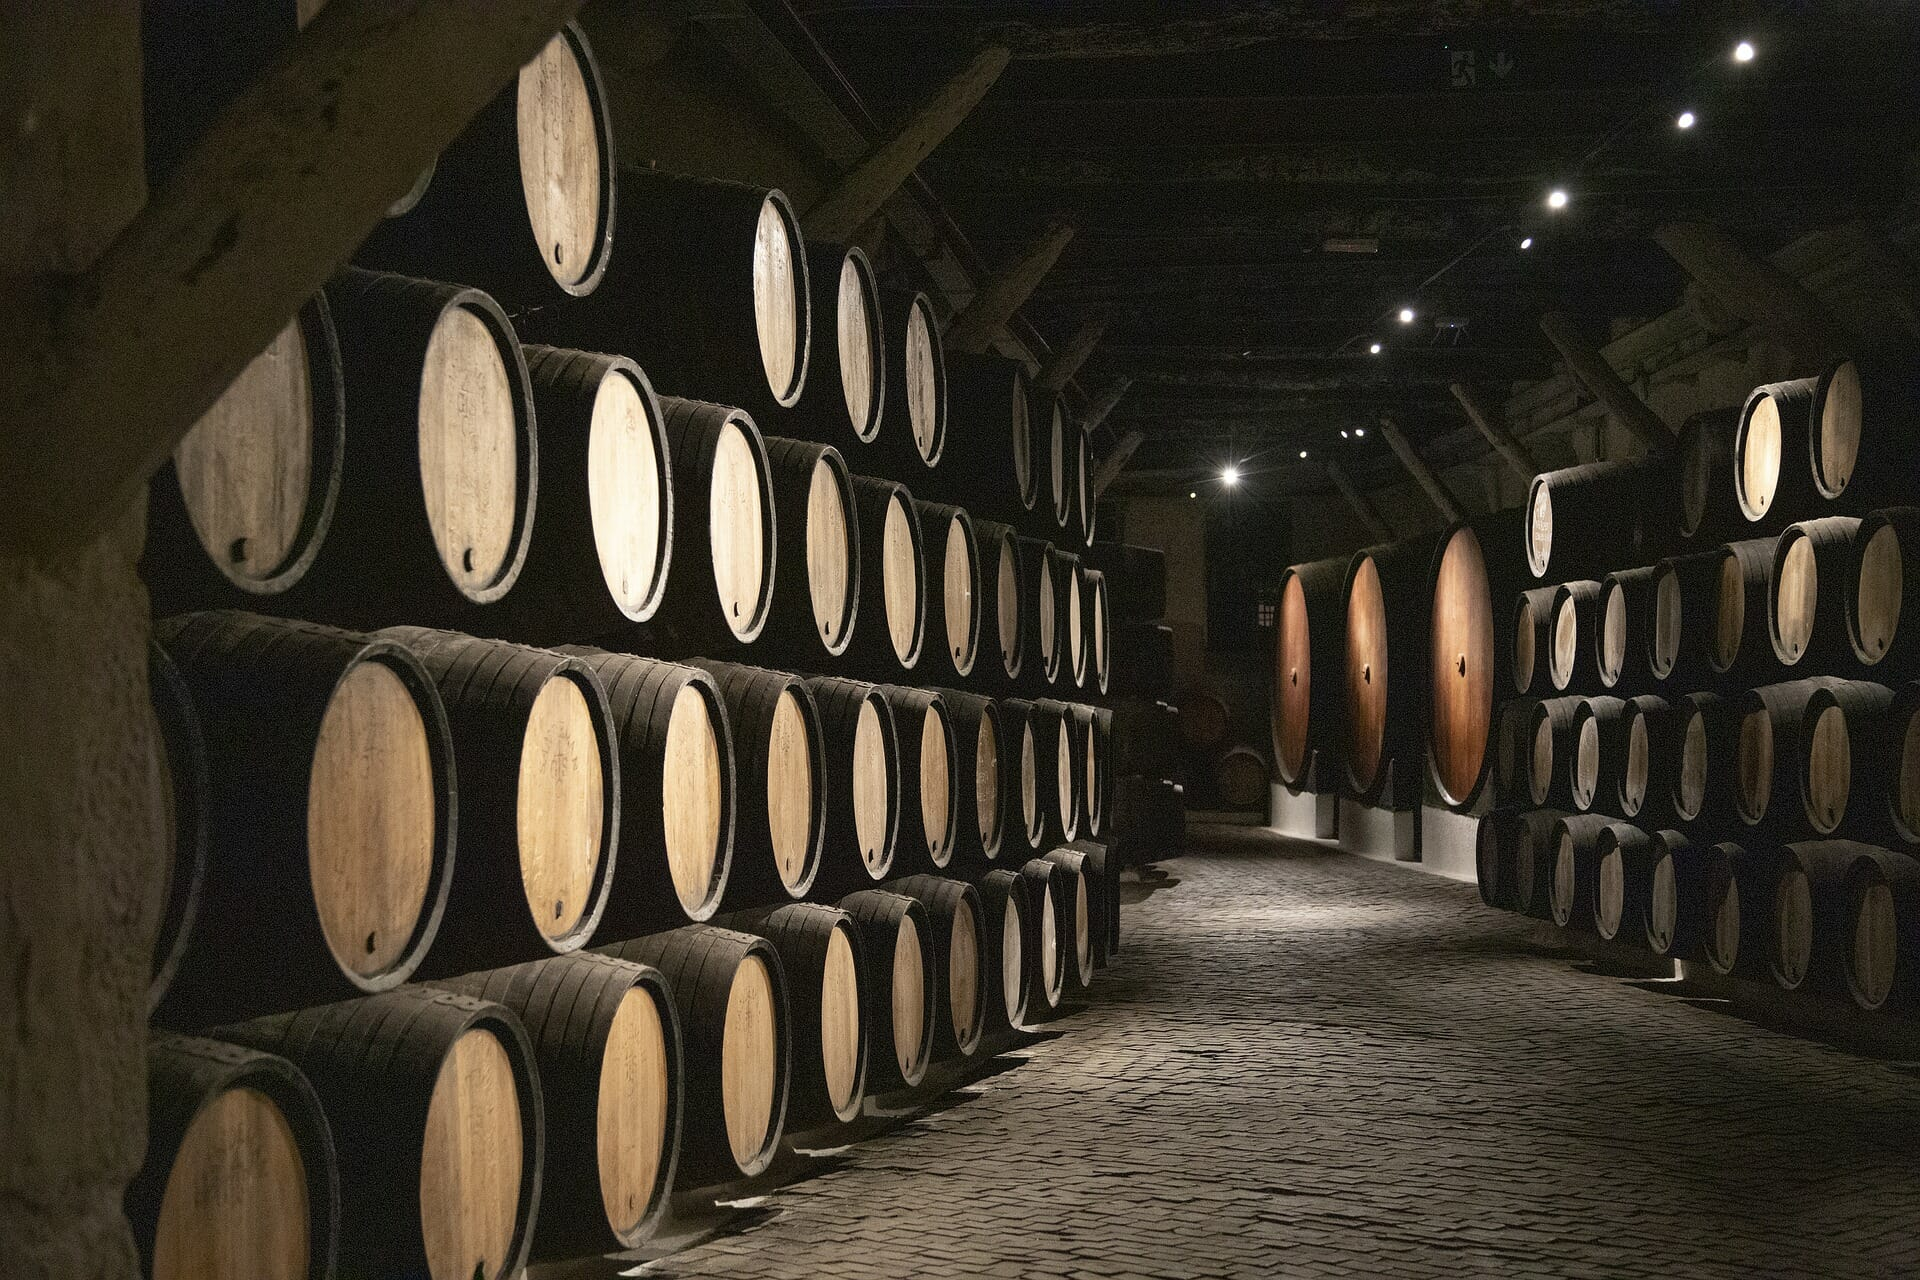 Wine barrels in and underground cellar, softly lit by the sparse lights overhead